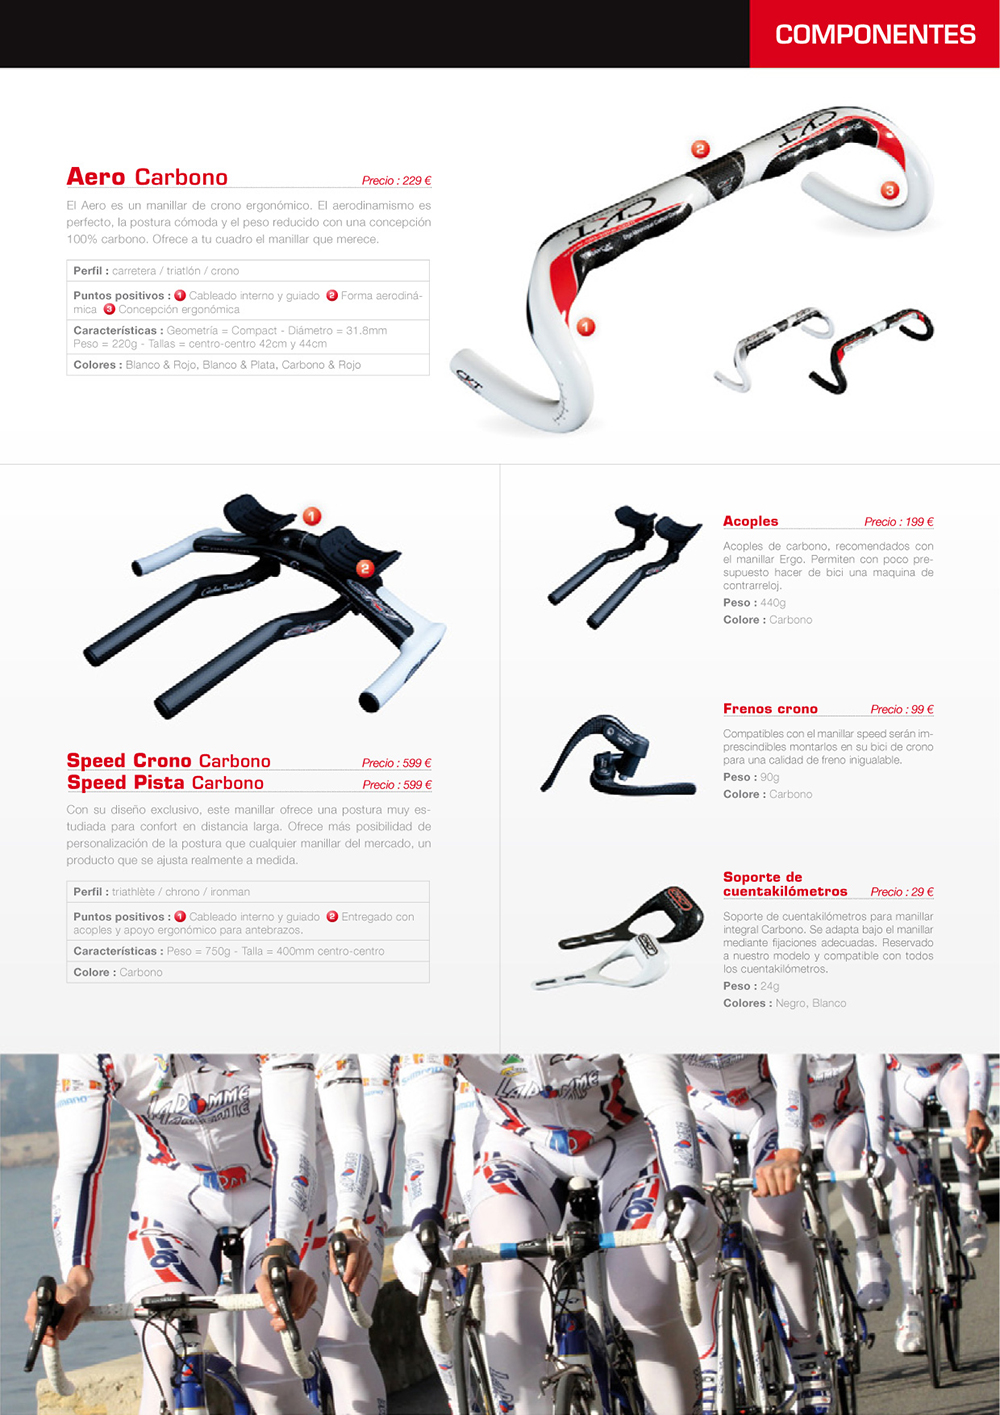 up-cycling-remi-chenu-experience-vente-sales-engineering-design-bike-cycling2